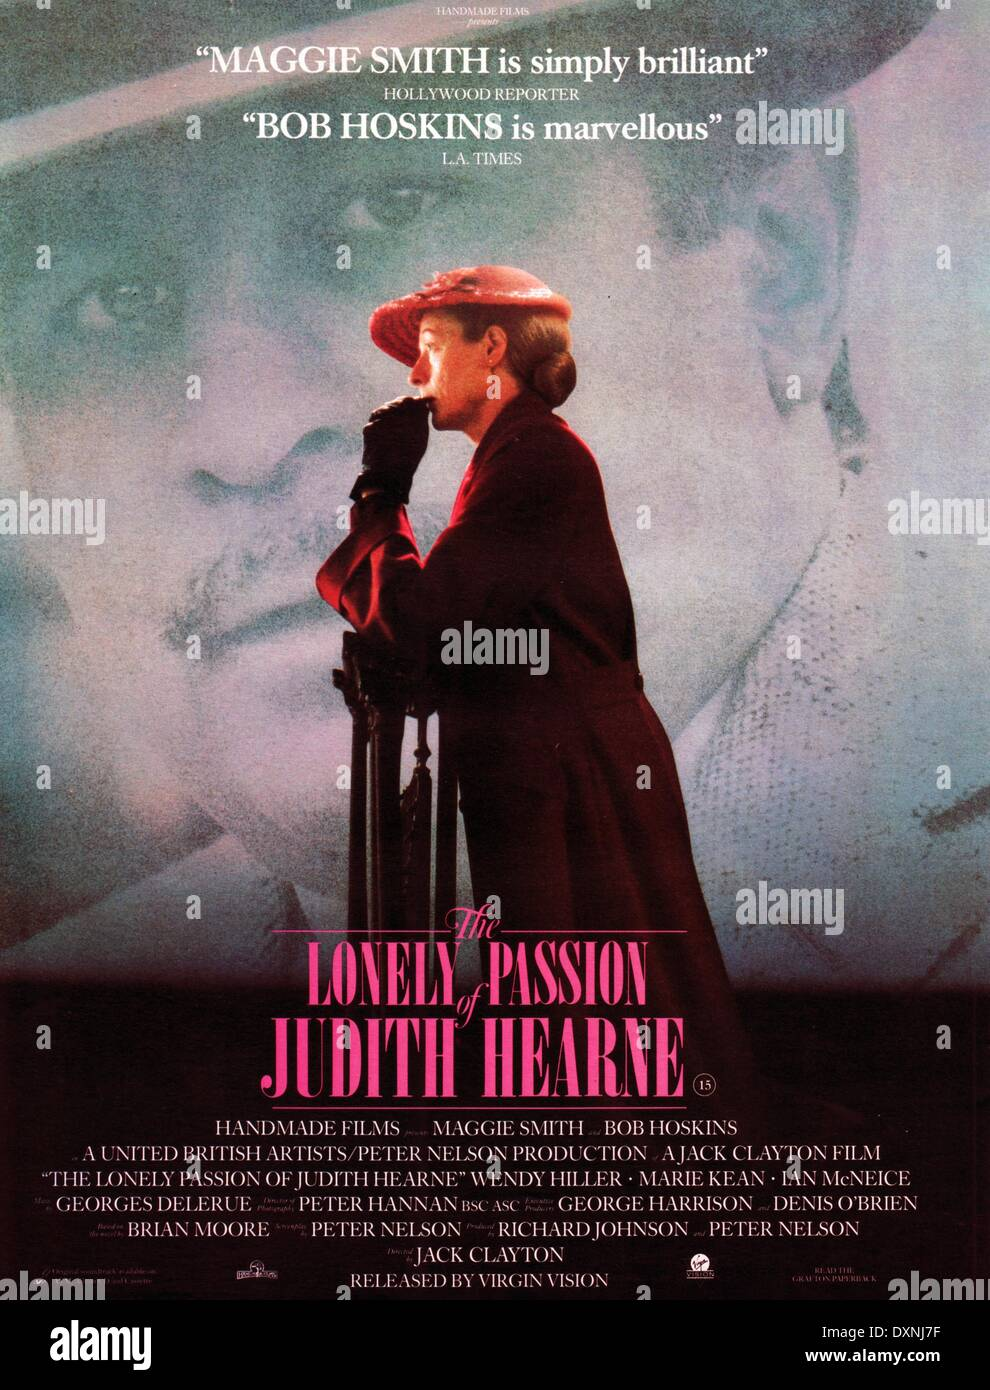 Lonely Passion of Judith Ahearne Poster - Stock Image